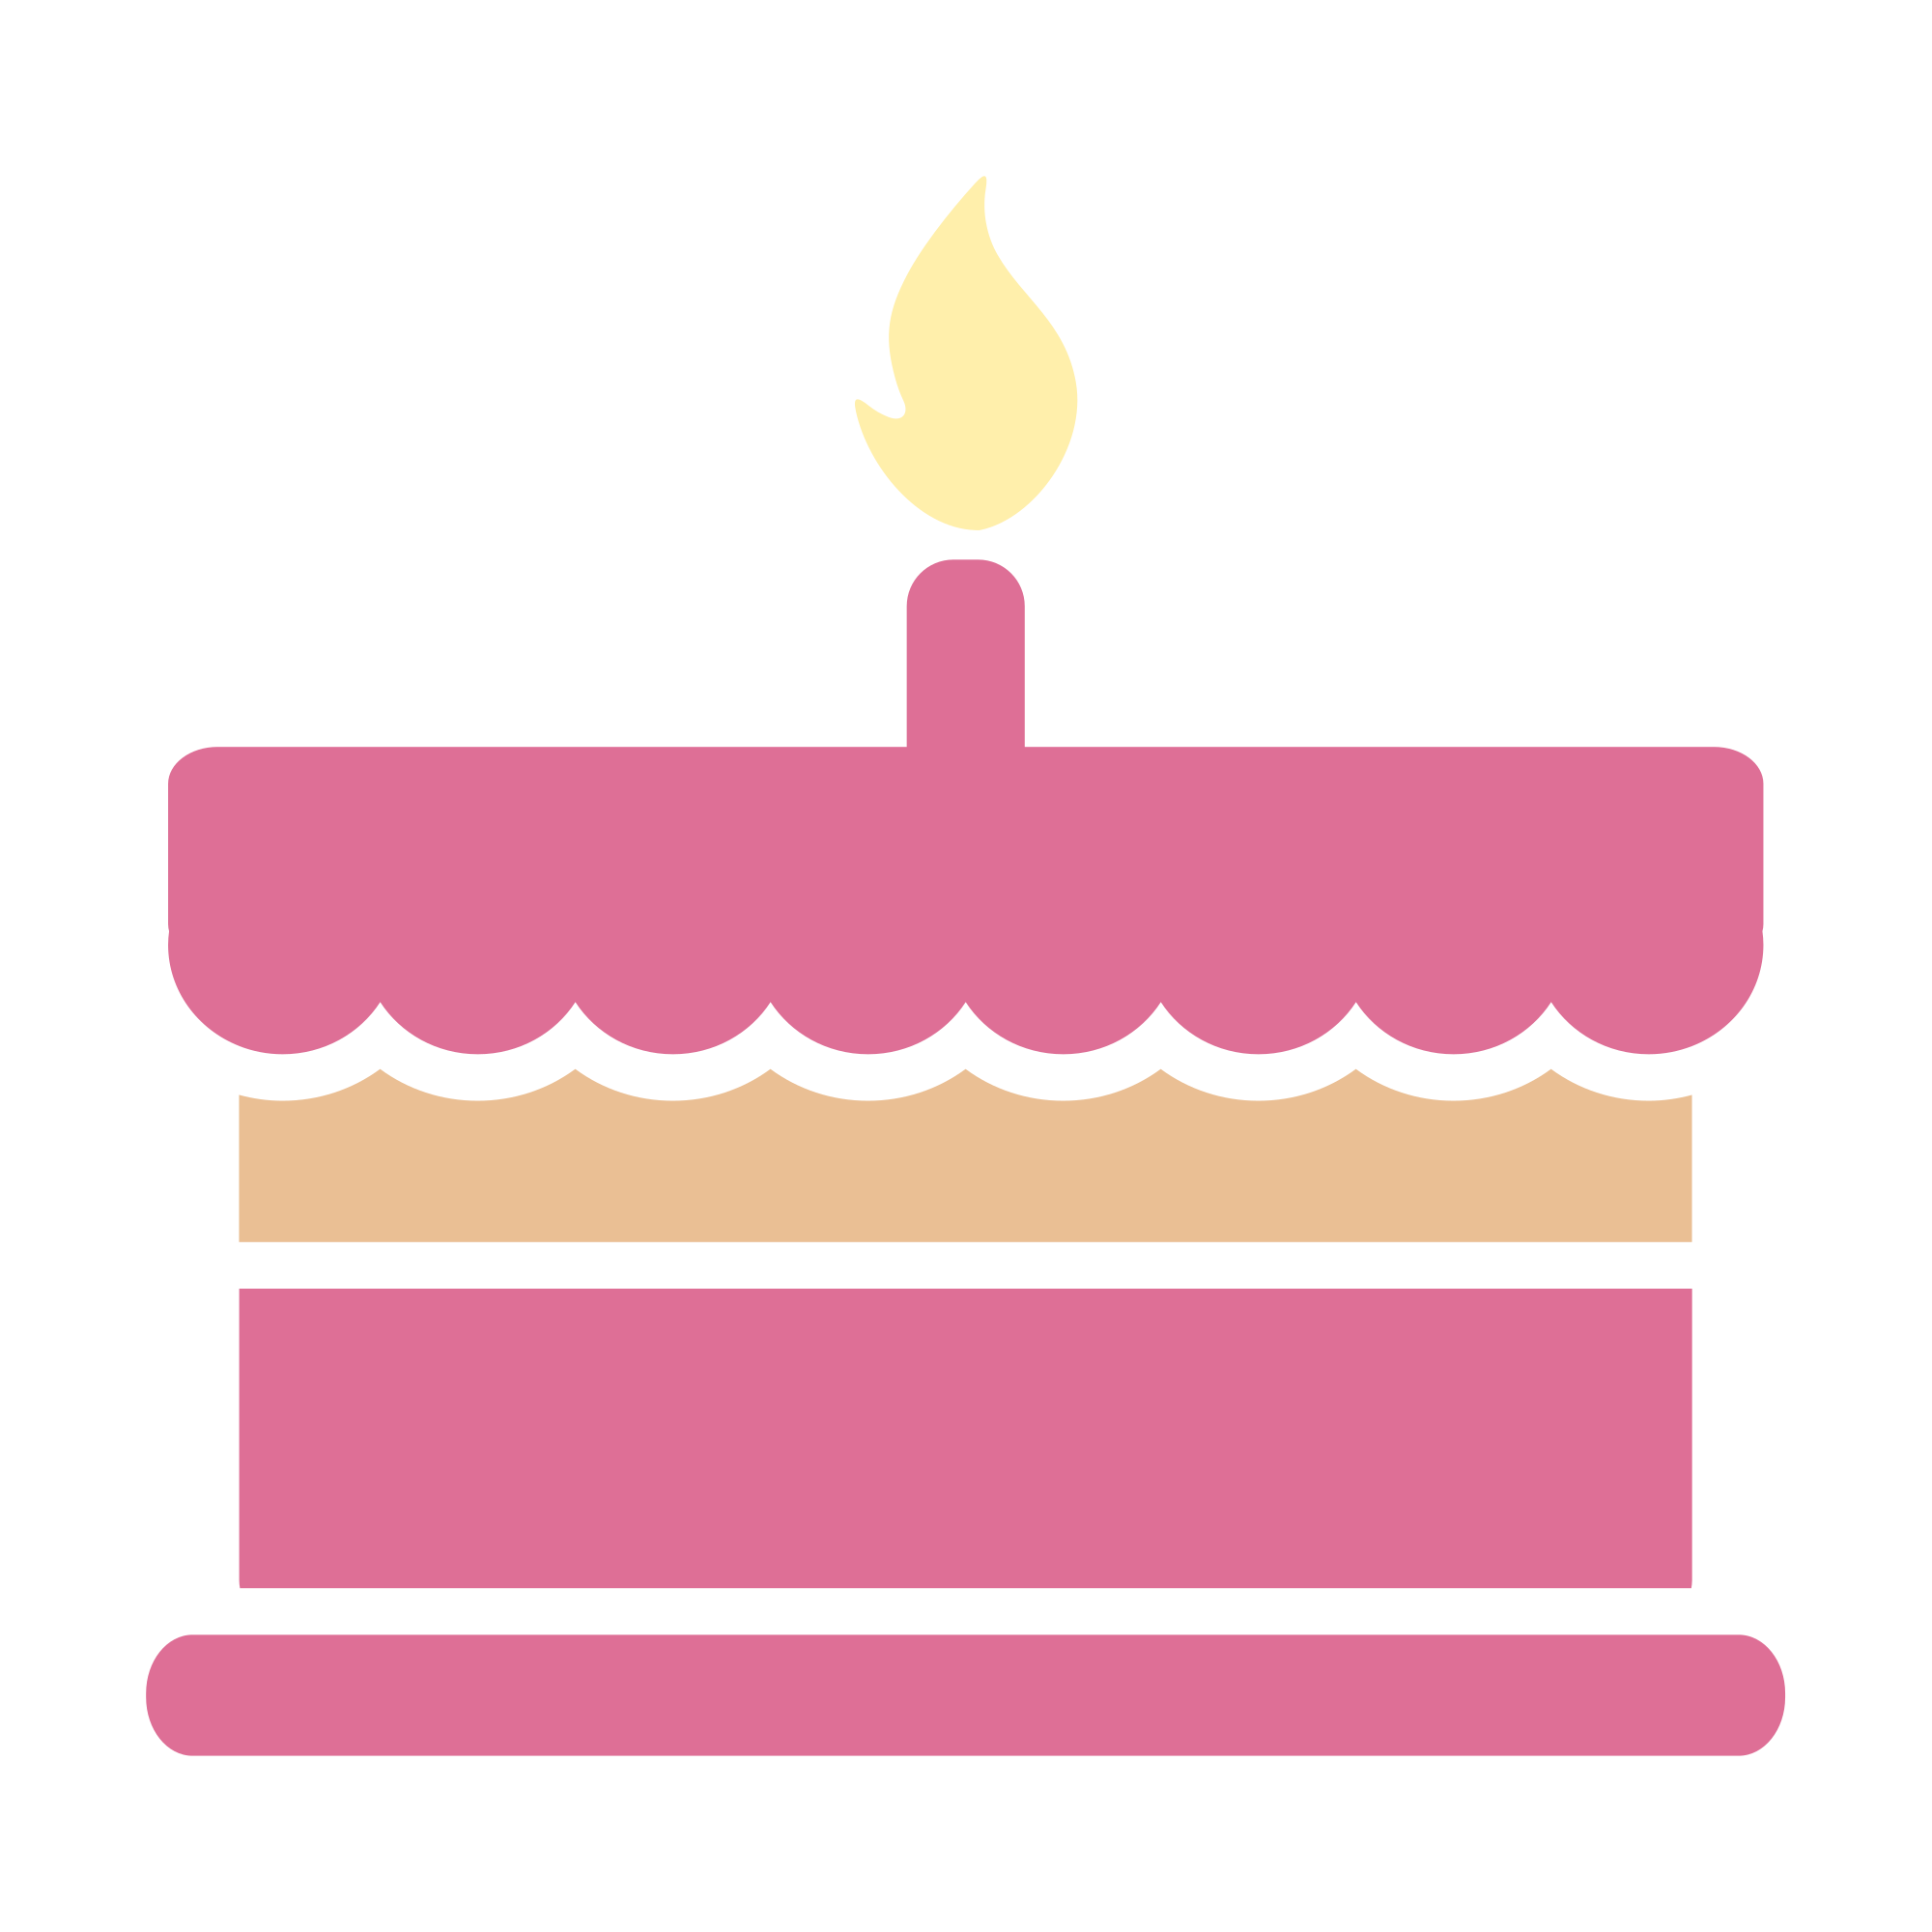 Cake svg #13, Download drawings